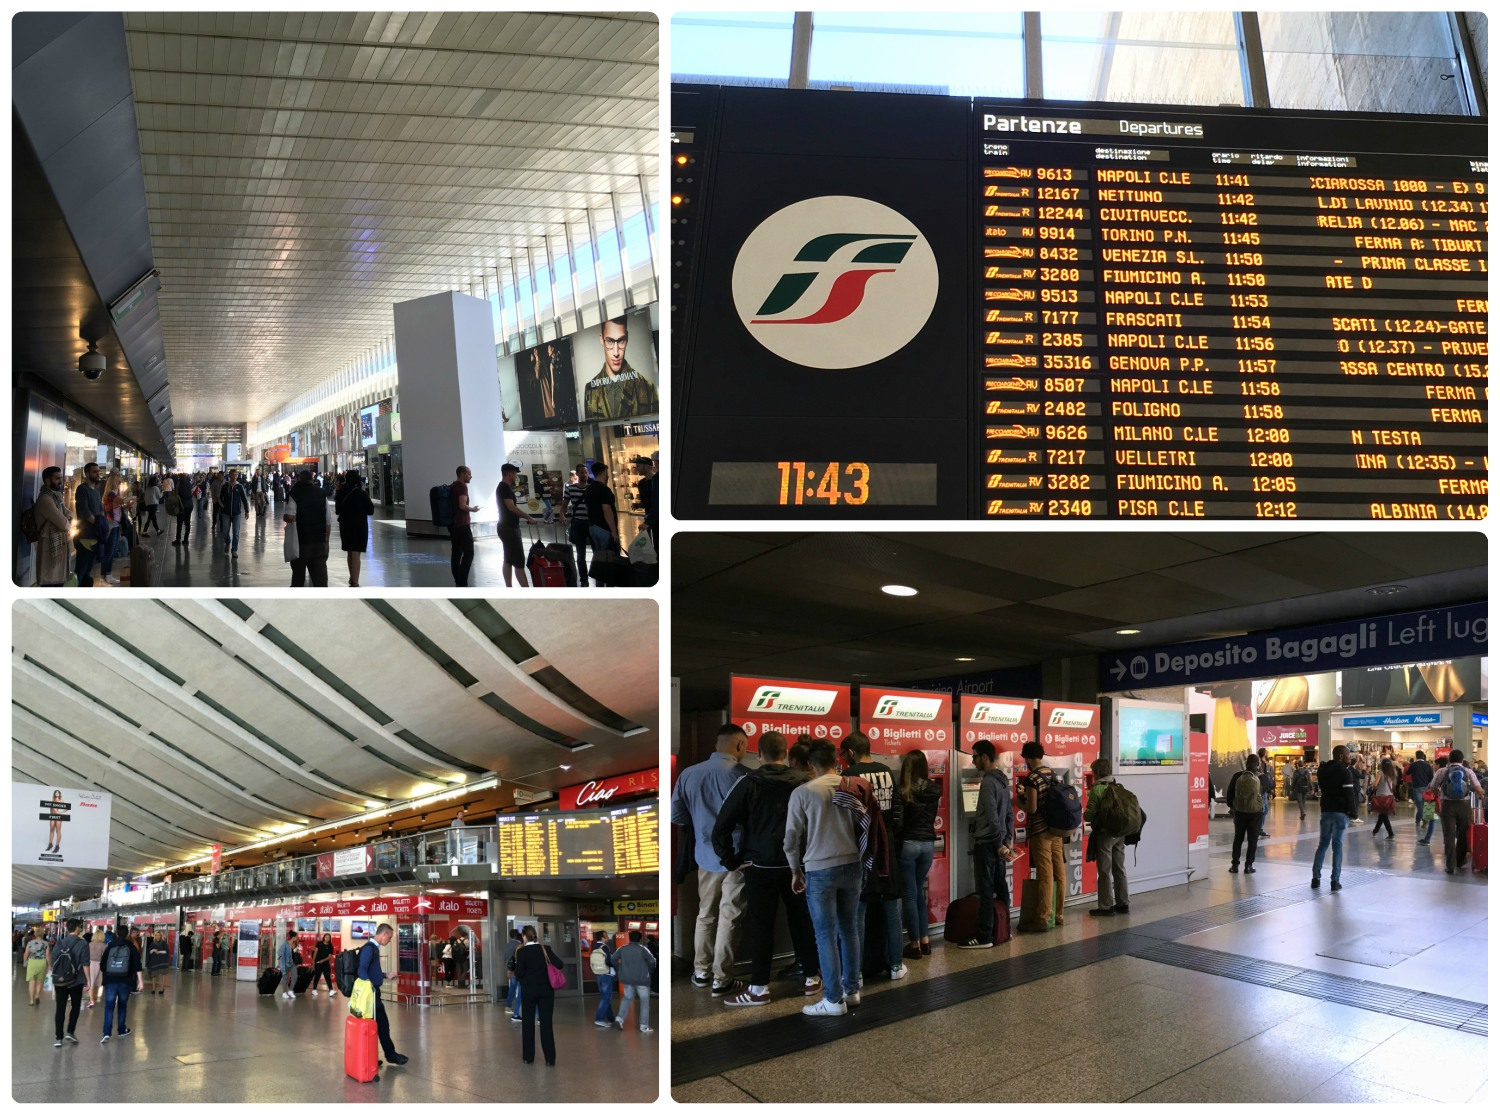 Termini Station in Rome, Italy is a main transportation hub.